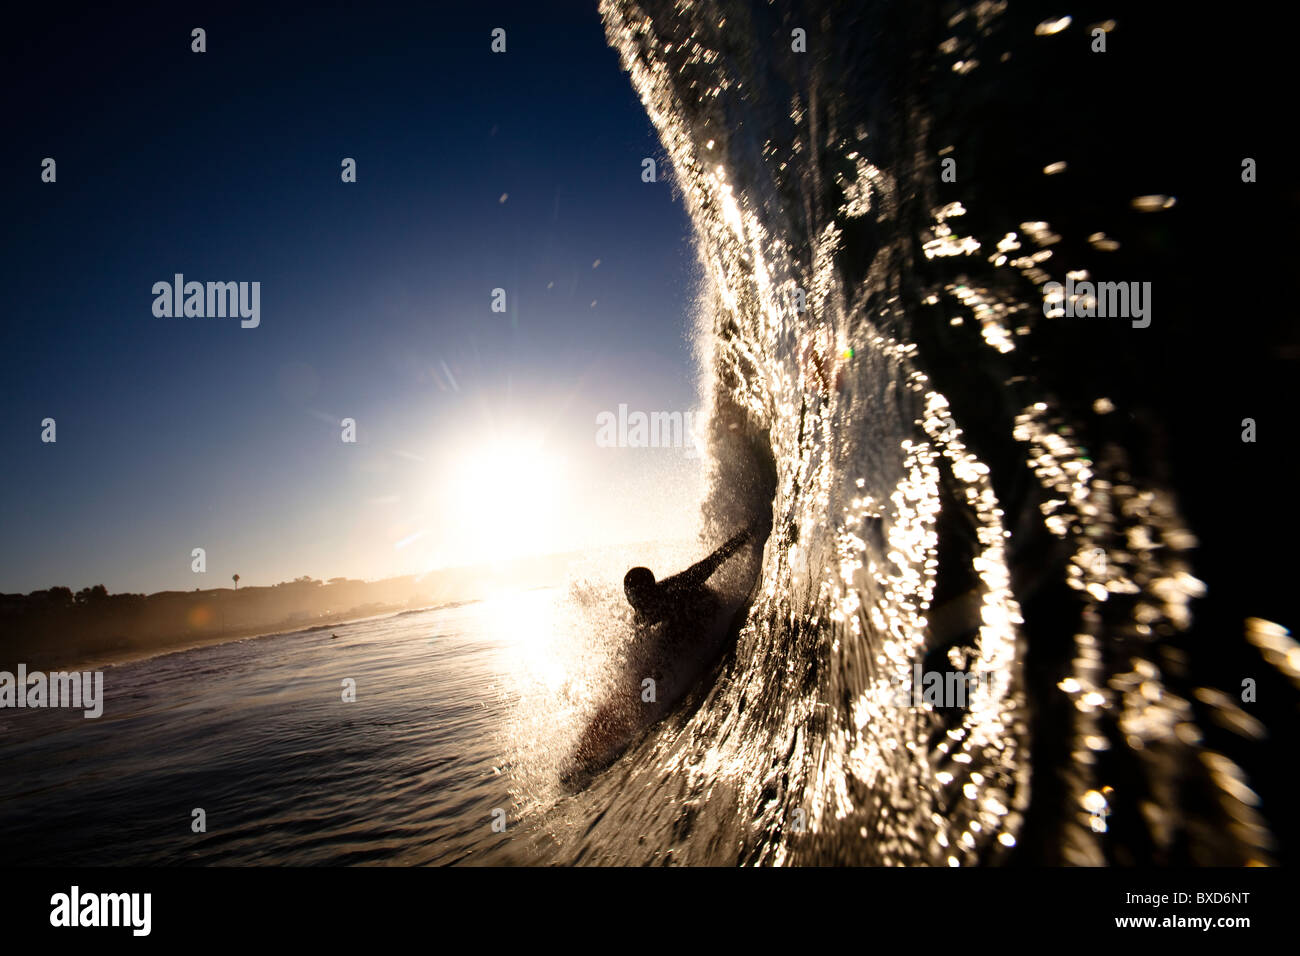 A male surfer pulls into a barrel at Zuma beach in Malibu, California. - Stock Image